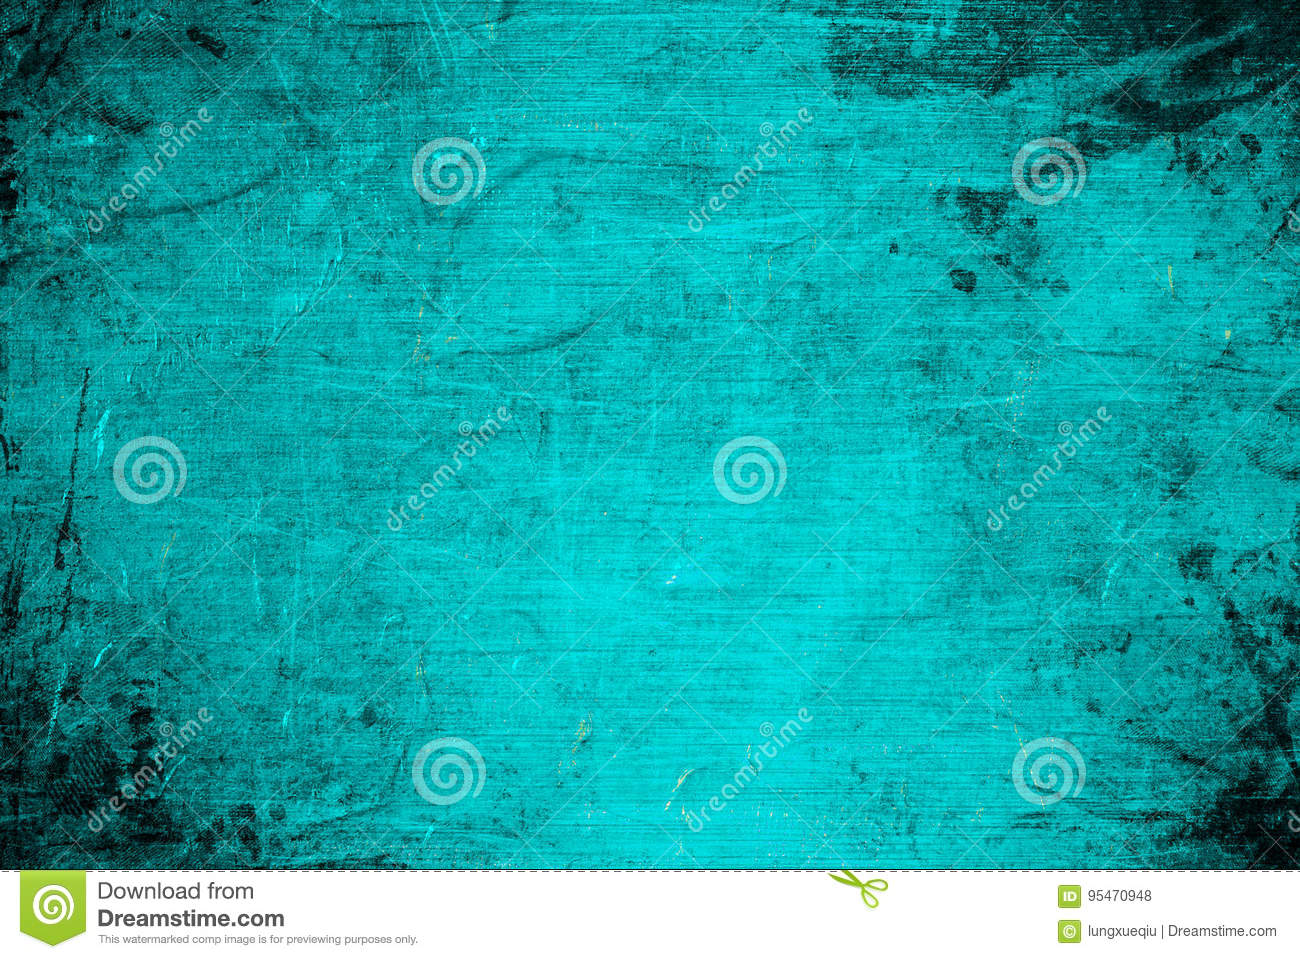 Background neon blue wall texture abstract grunge ruined scratched texture